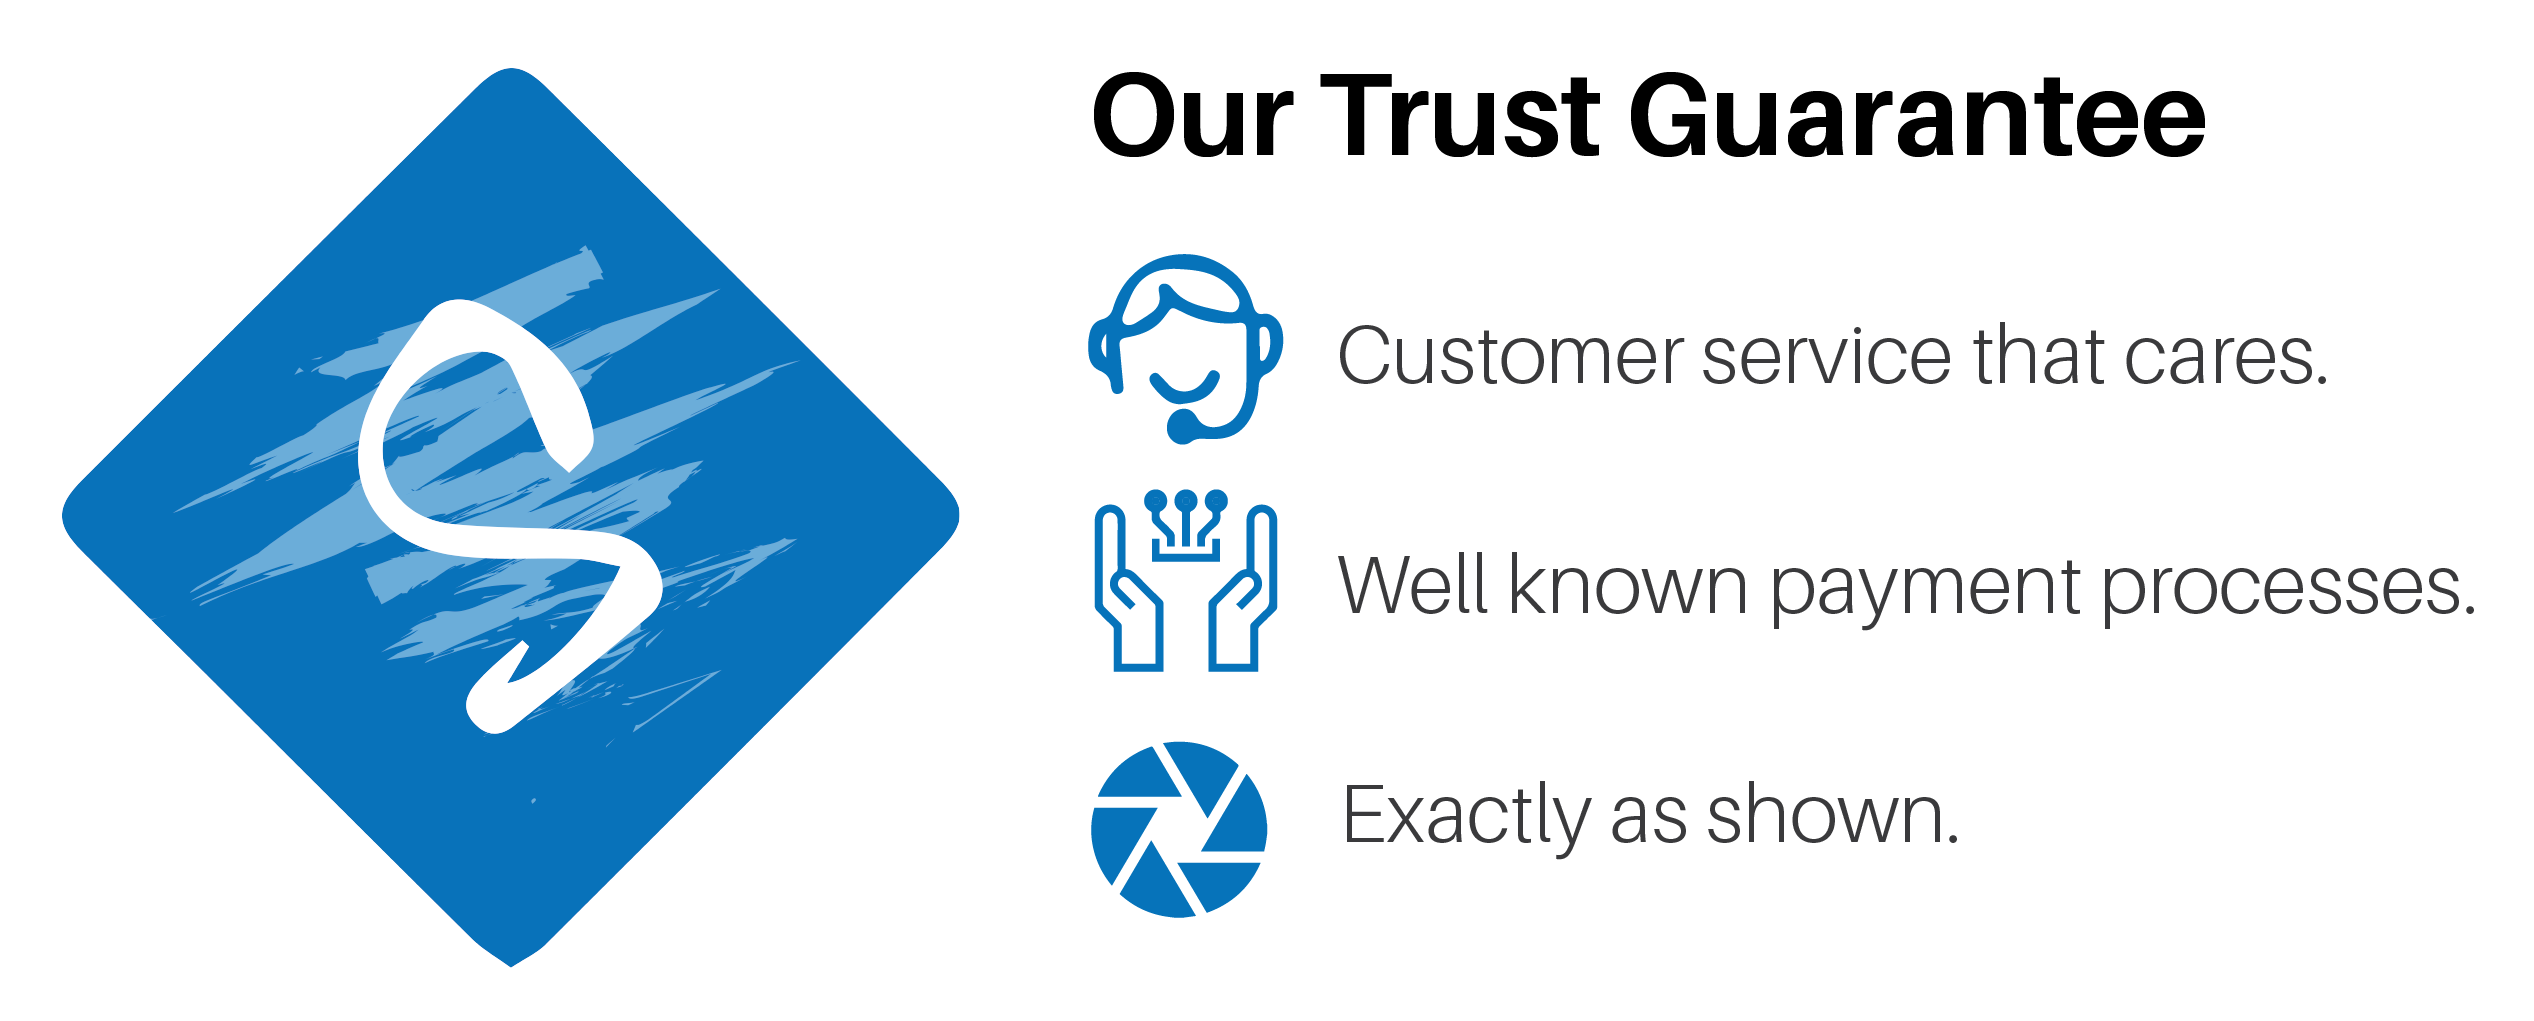 Spectre Superstore Trust Guarantee